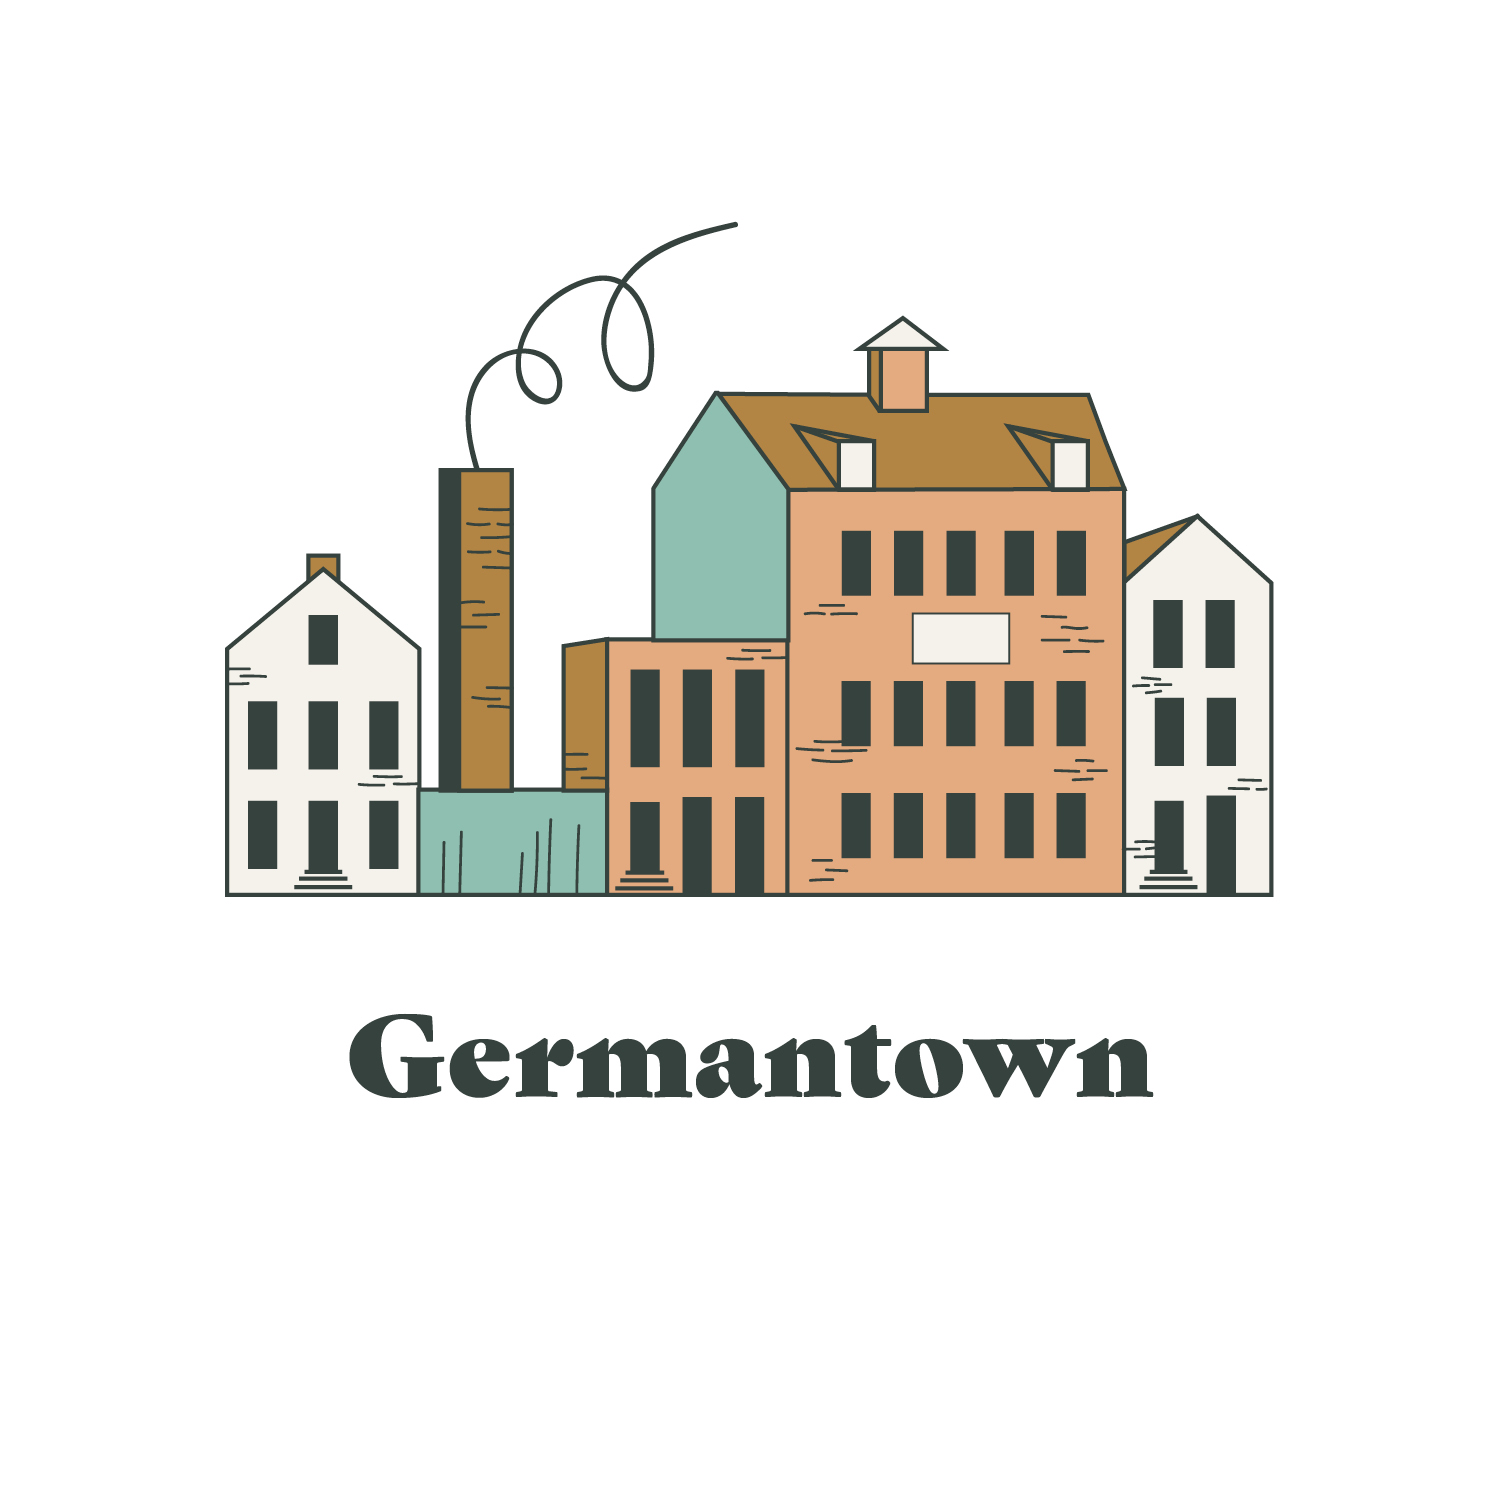 Germantown Yarn Graphic.jpg